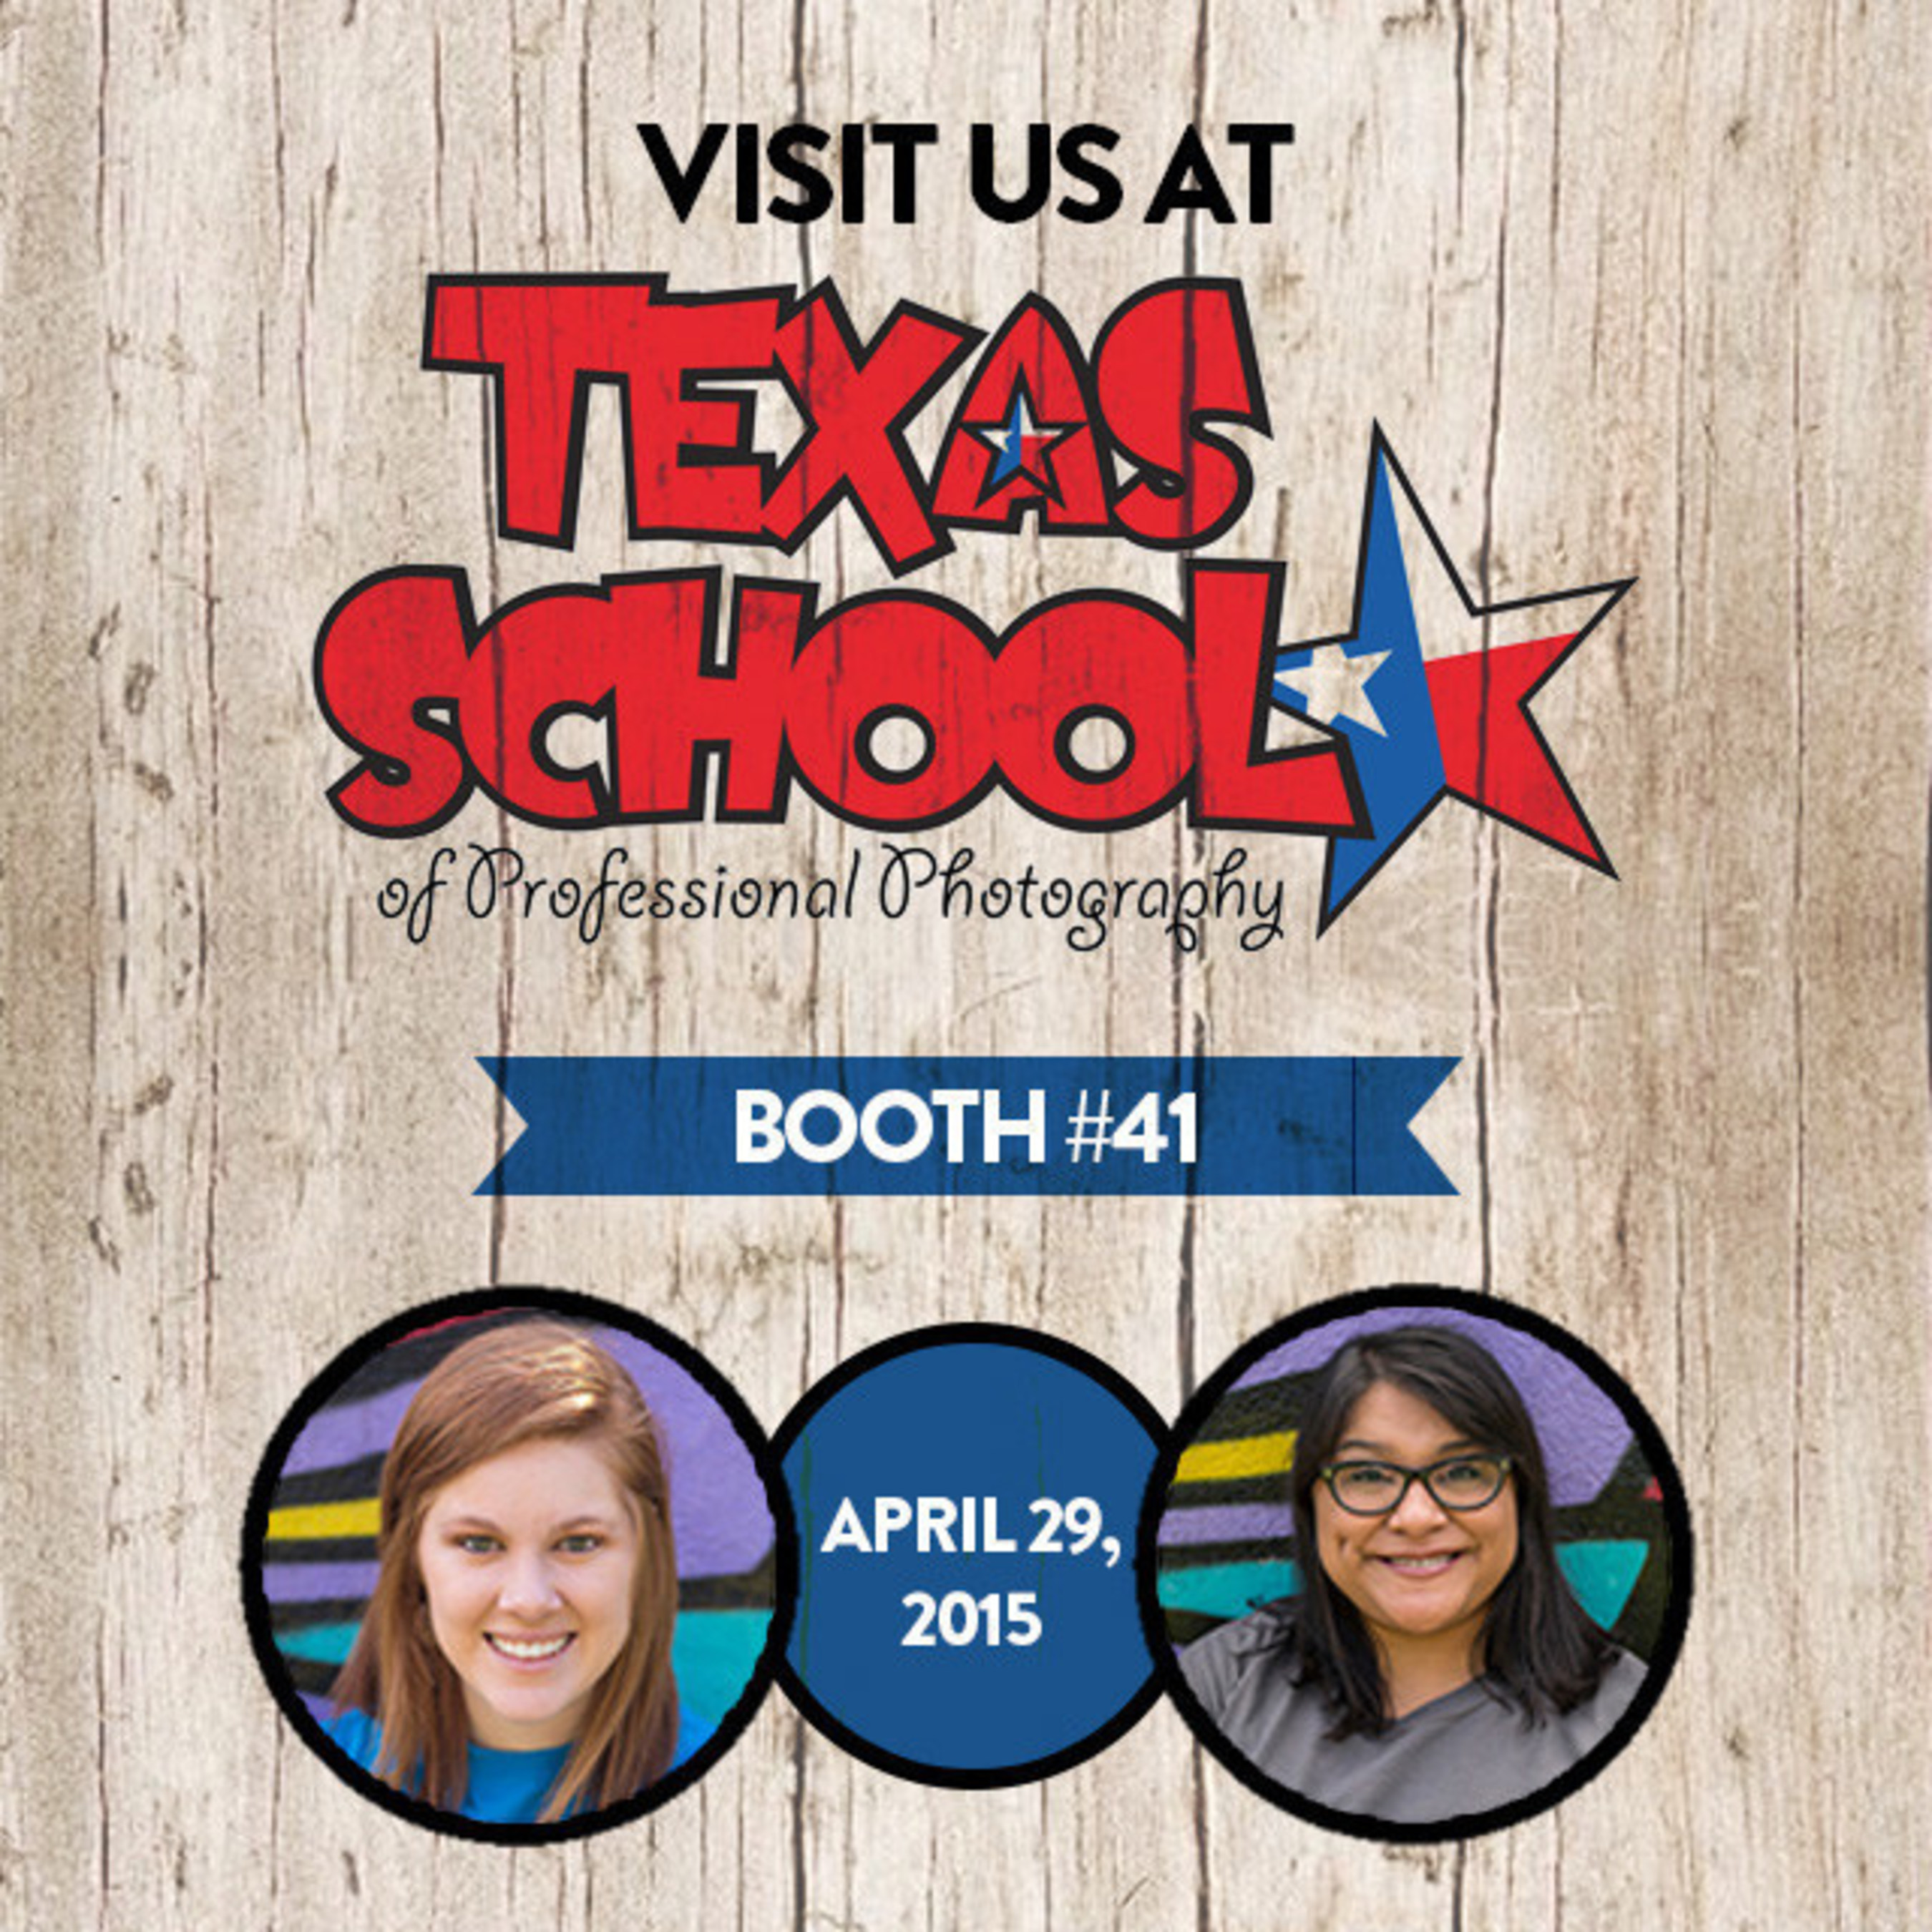 PhotoBiz Attending the 2015 Texas School of Professional Photography Conference